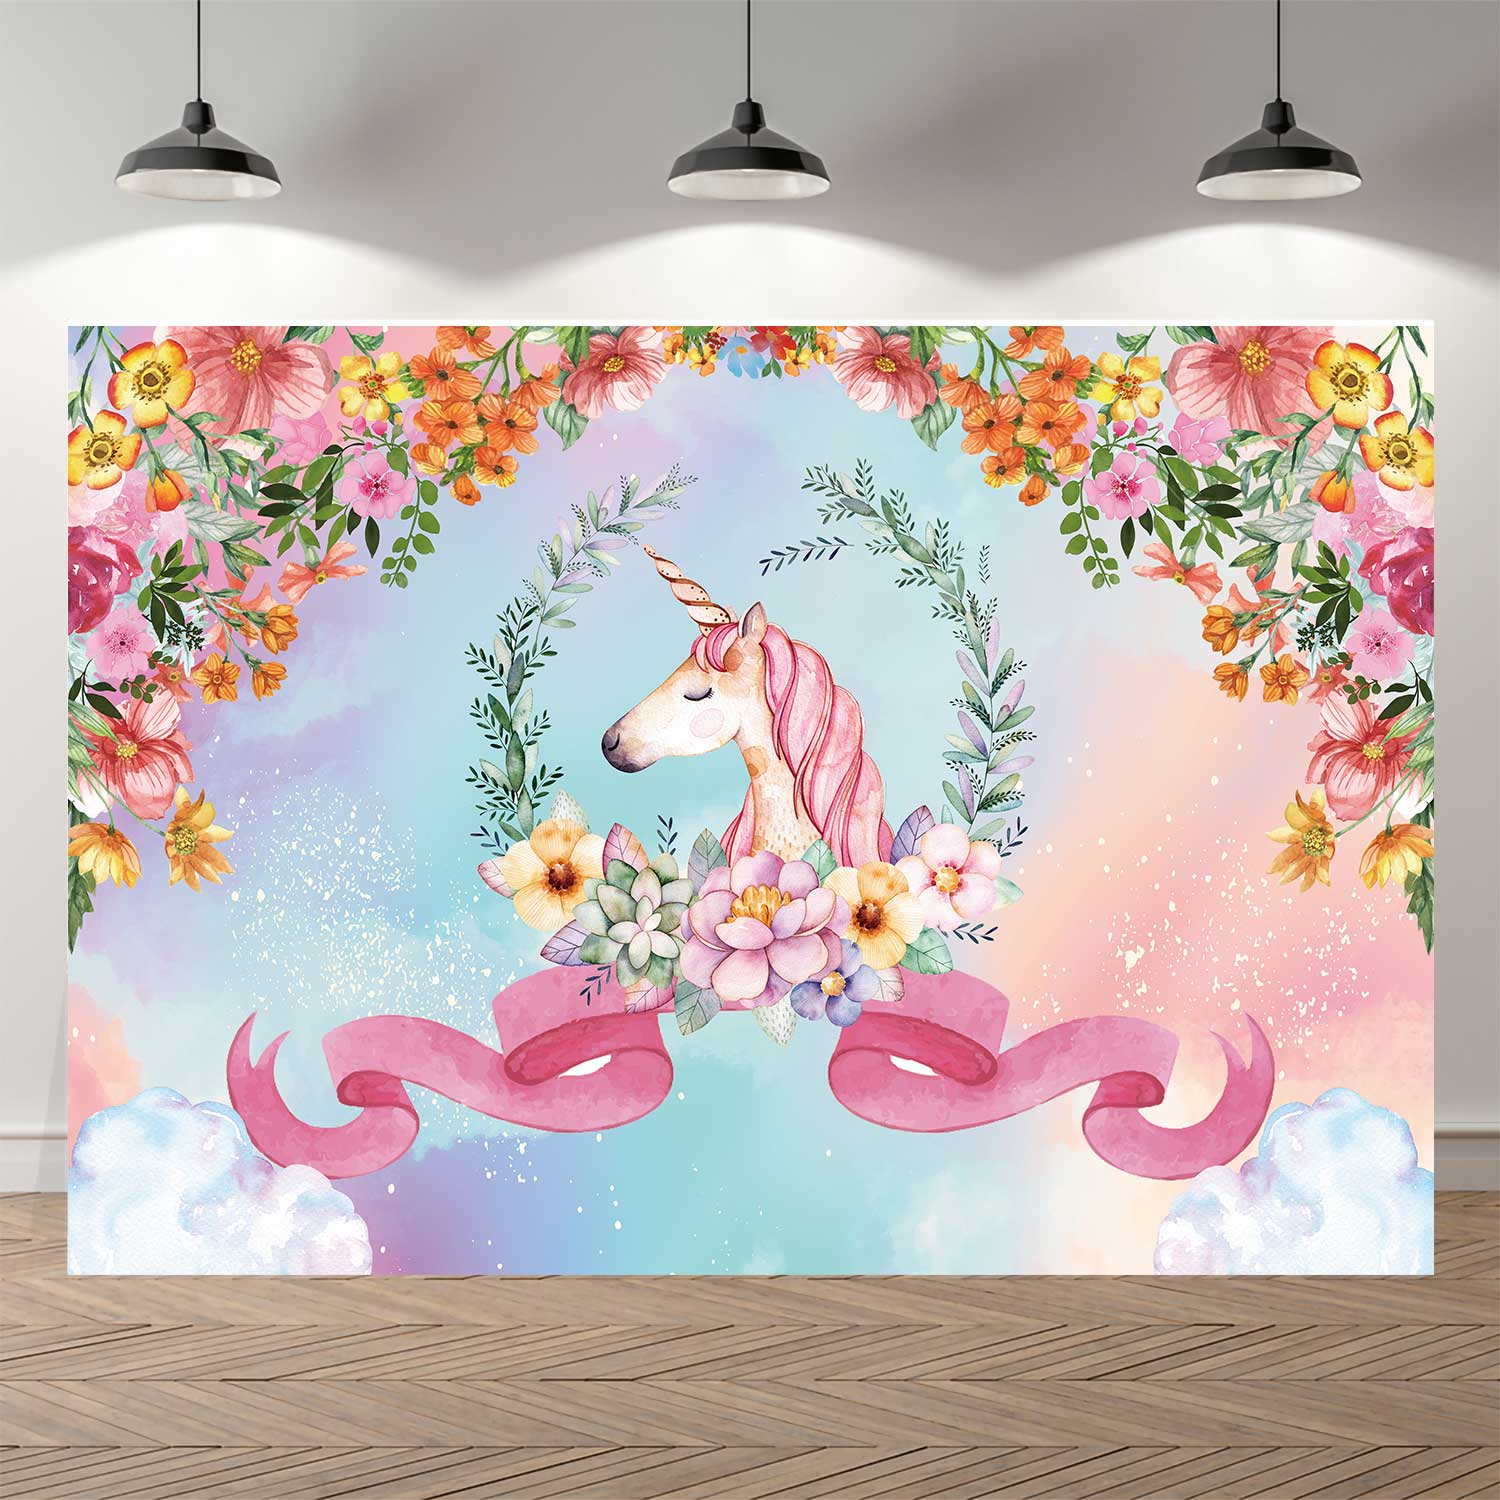 NeoBack Spring Floral Unicorn Ribbon Sky Cloud Photo Backdrop Birthday Photography Background for Children Party Decorations